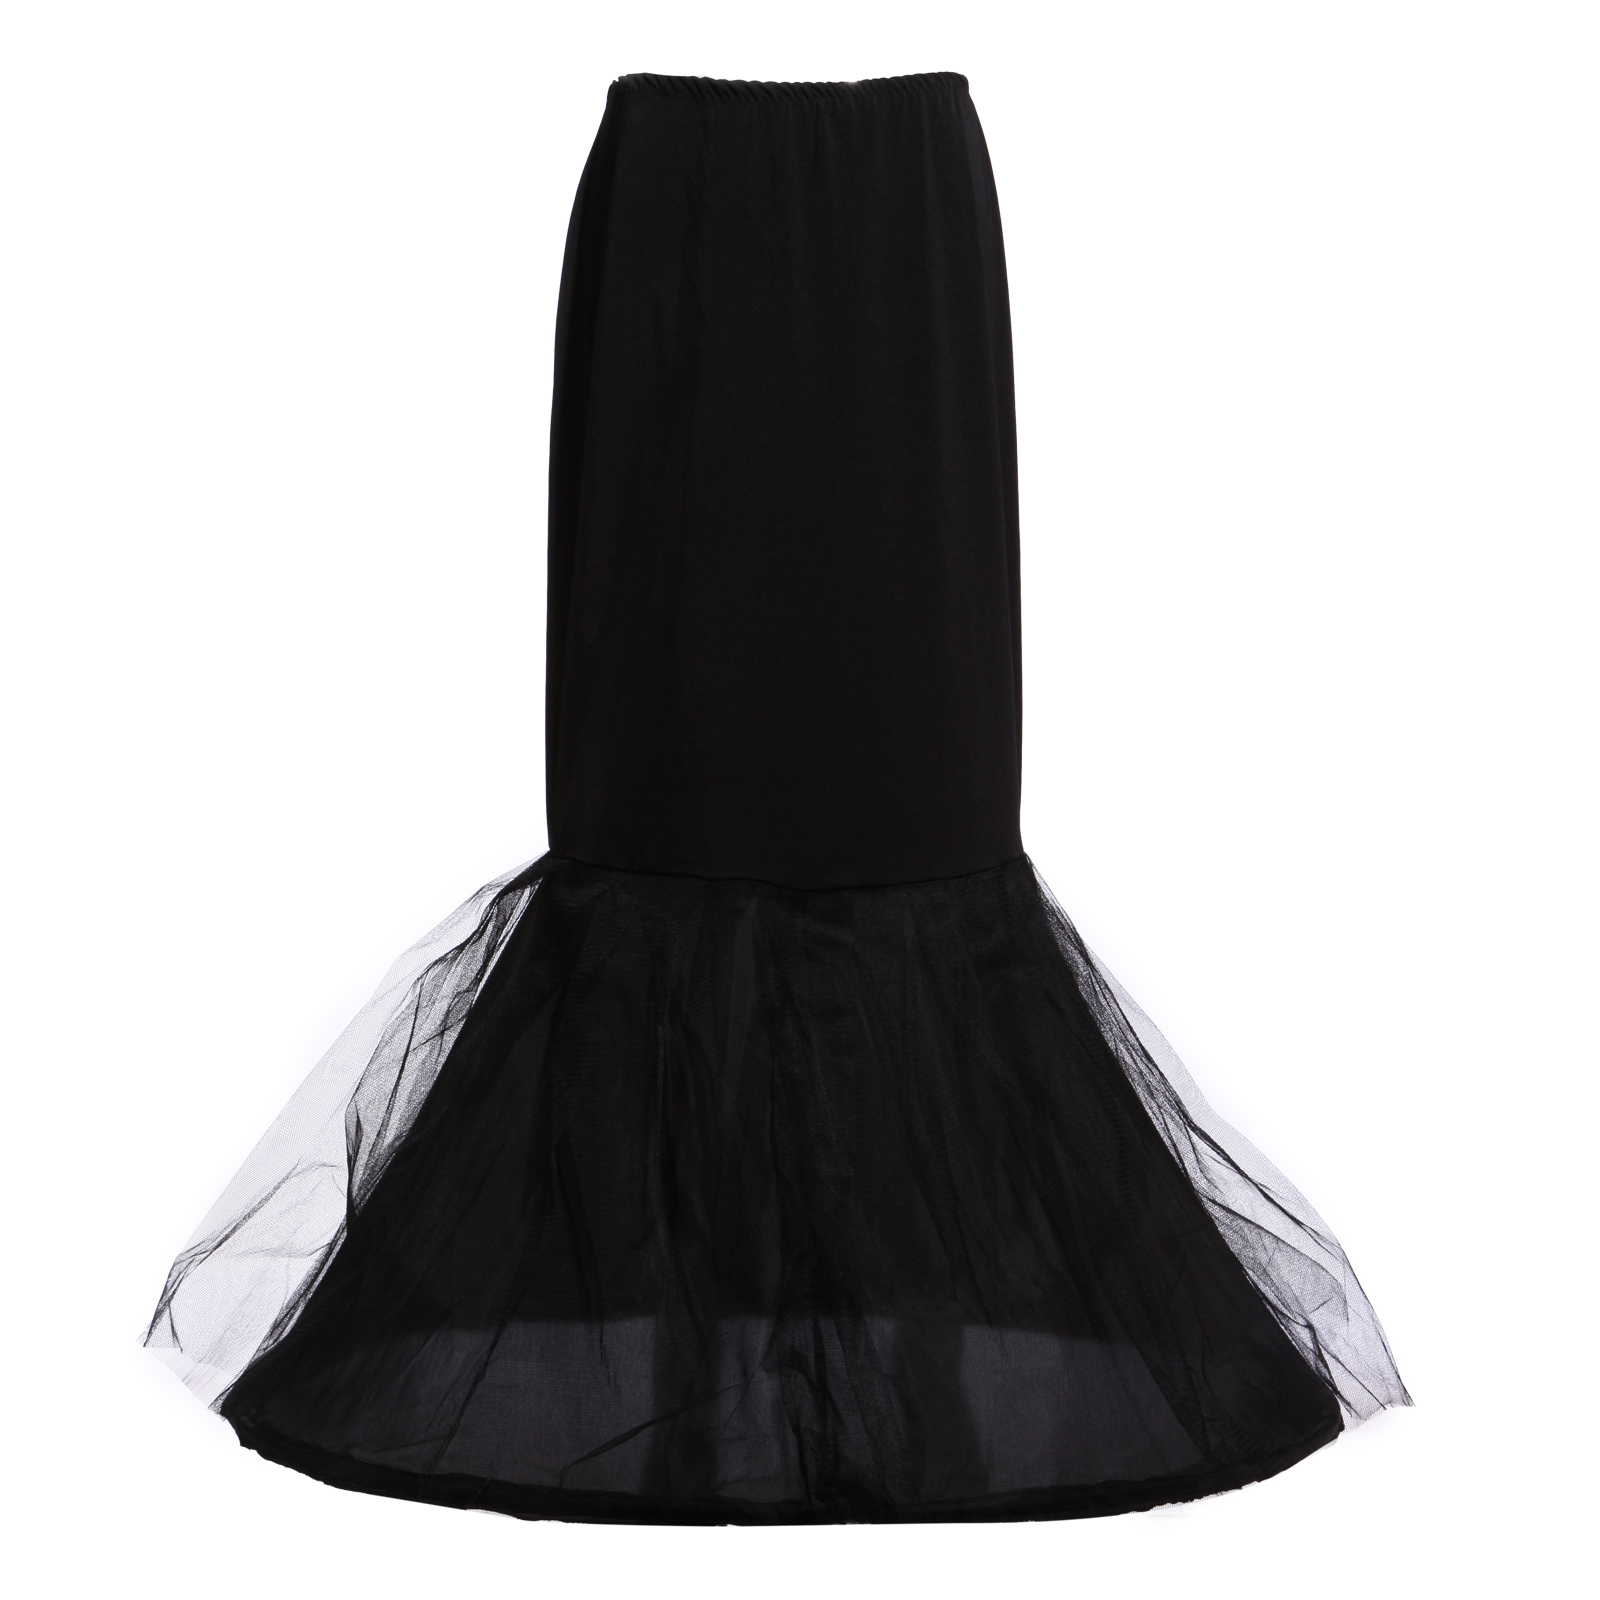 100cm petticoat unterrock f r brautkleid abendkleid. Black Bedroom Furniture Sets. Home Design Ideas